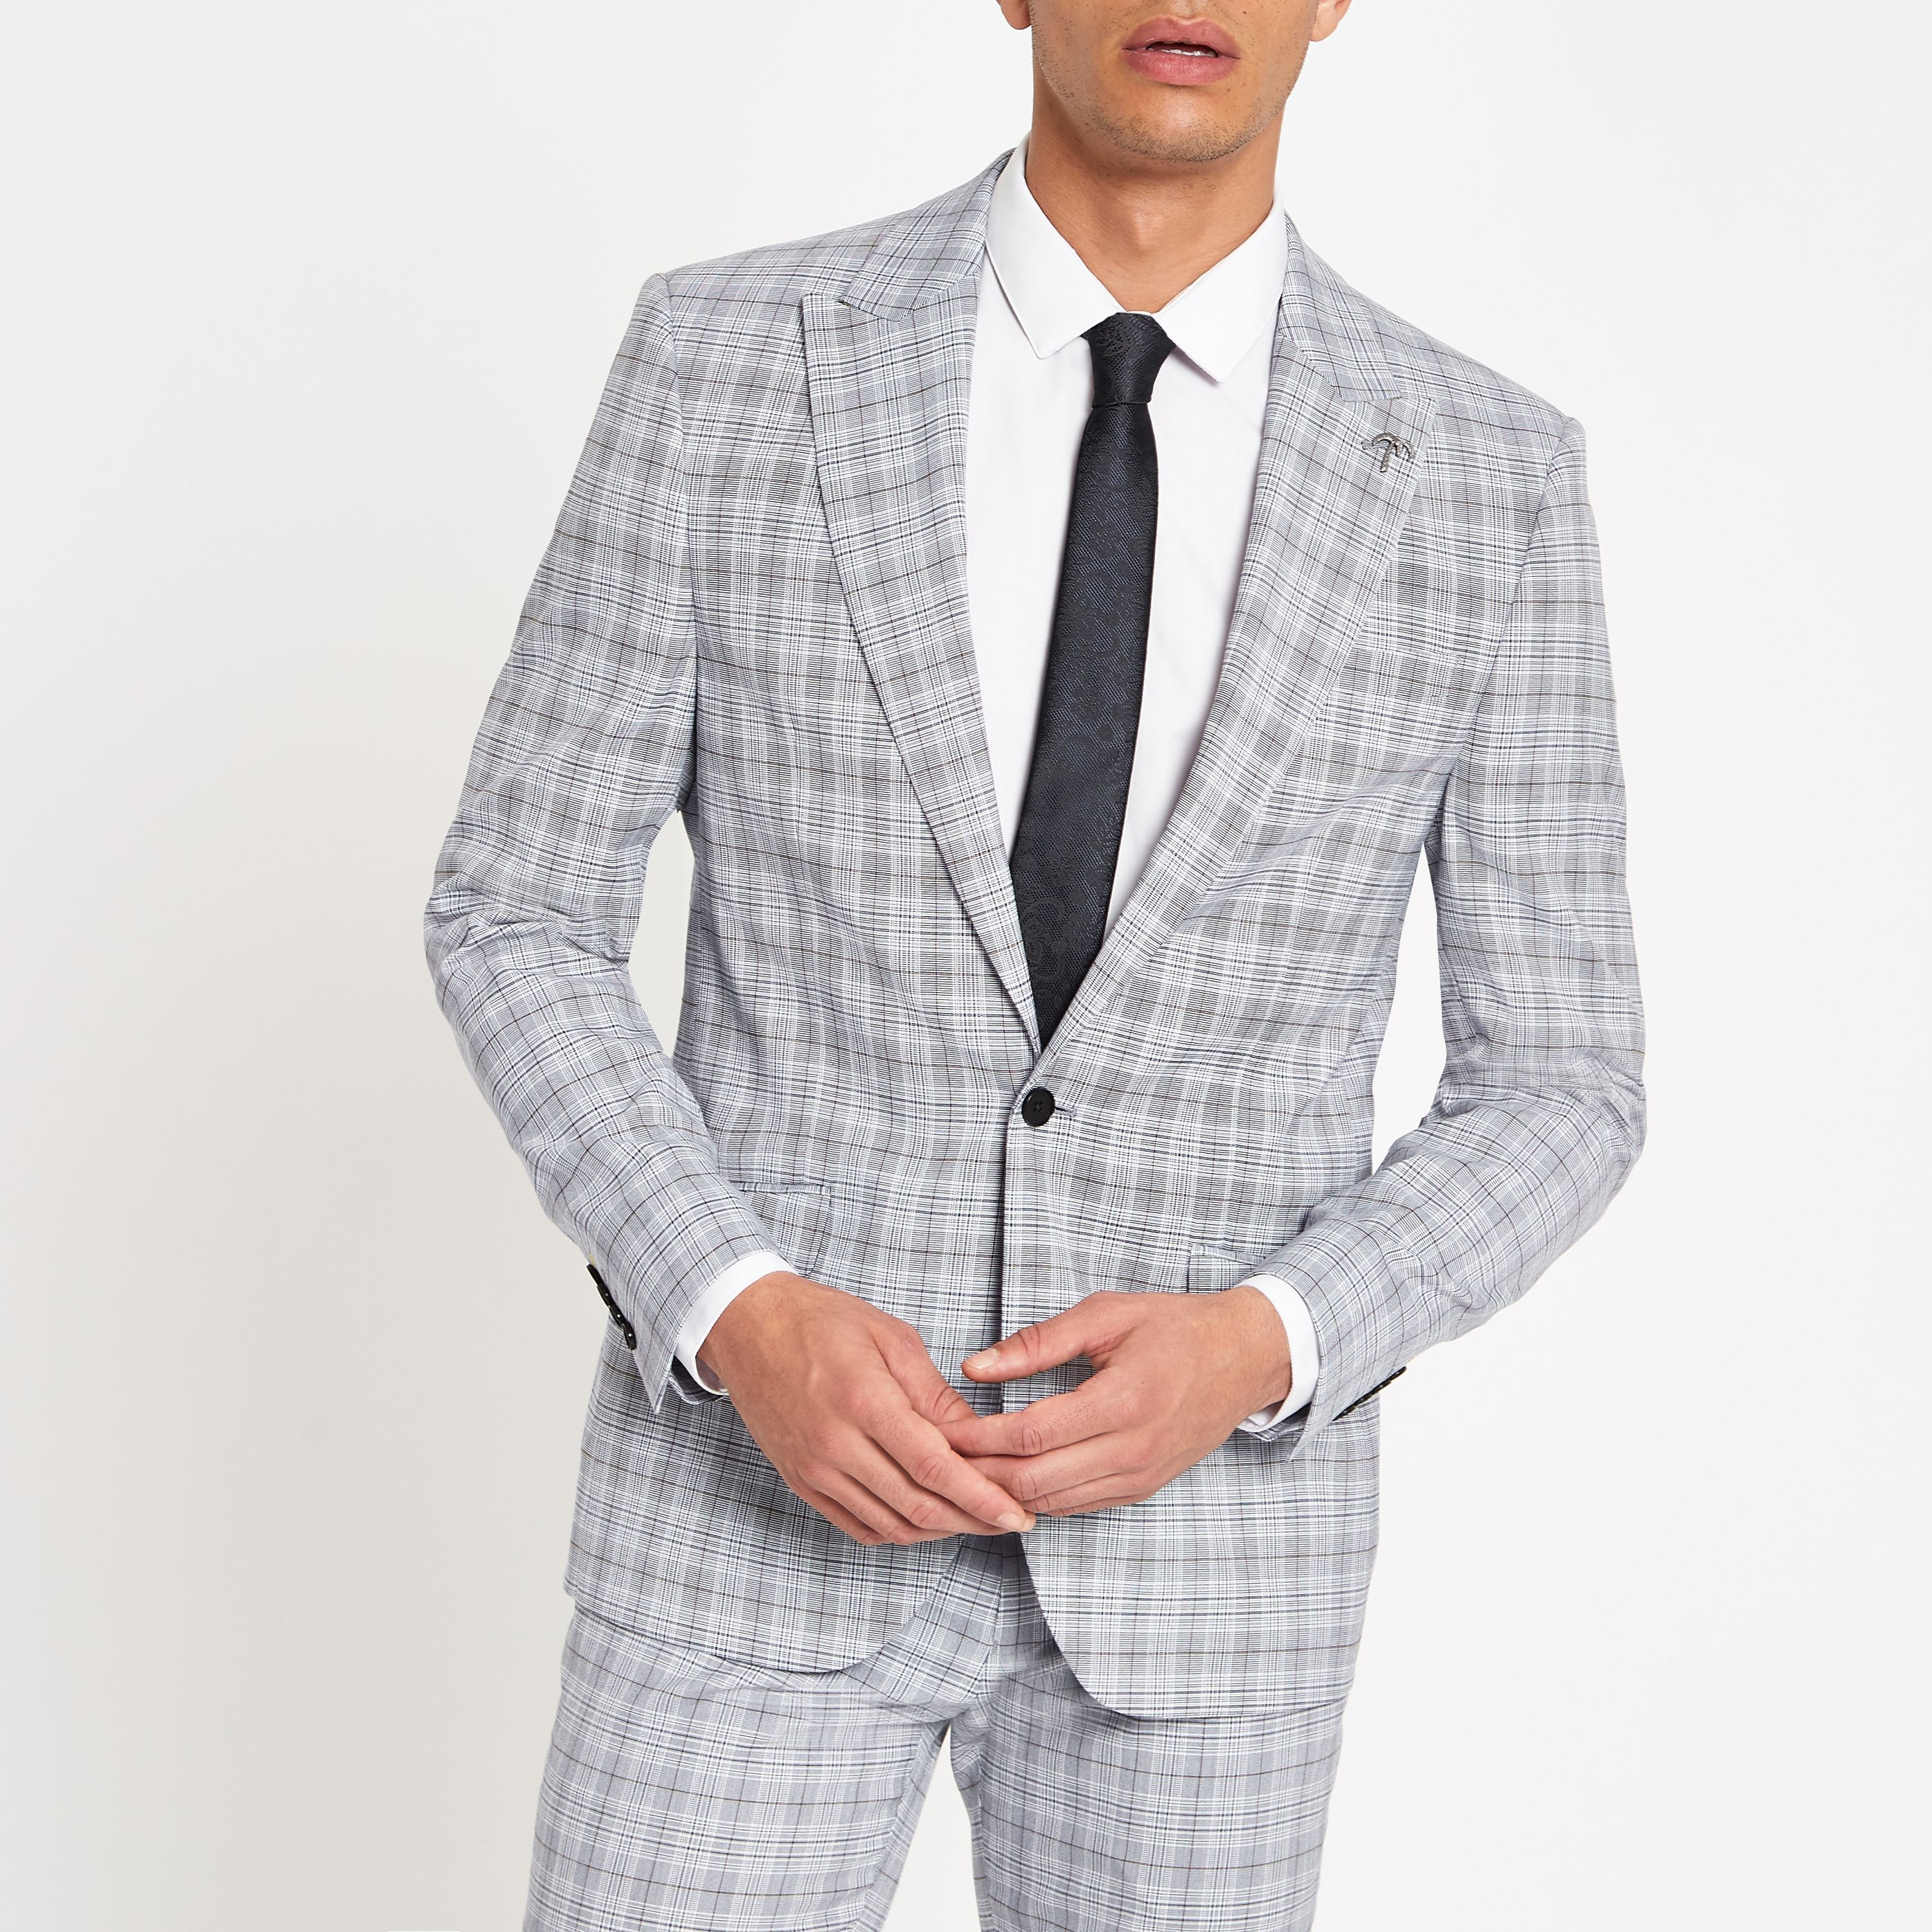 19b4fc97ffc059 JF JFerrar Blue Check Checked Slim Fit Stretch Suit Jacket in 2019